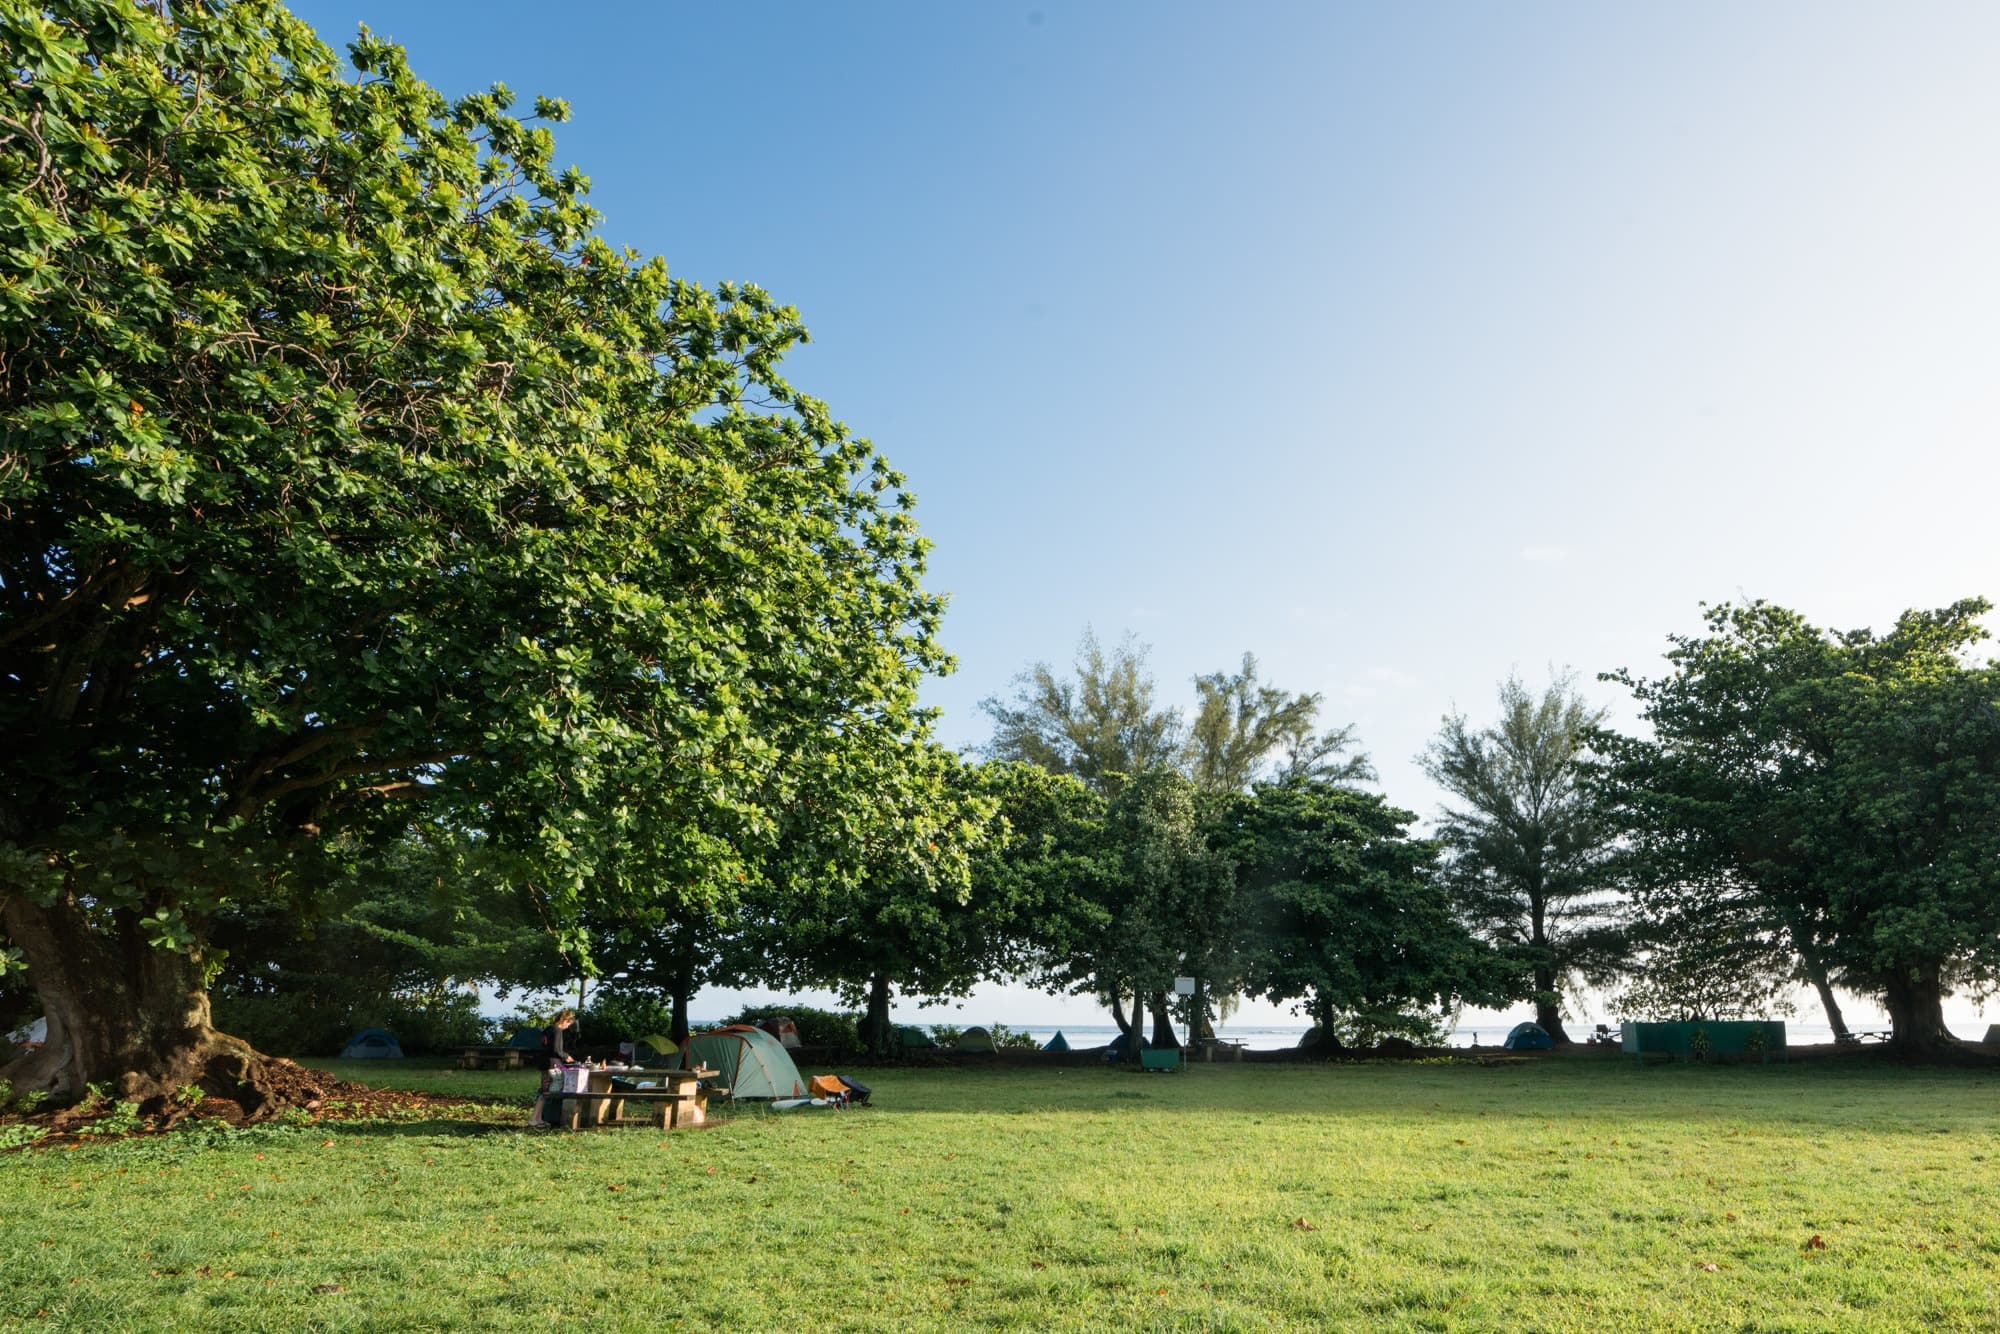 Anini Beach Campground, Kauai